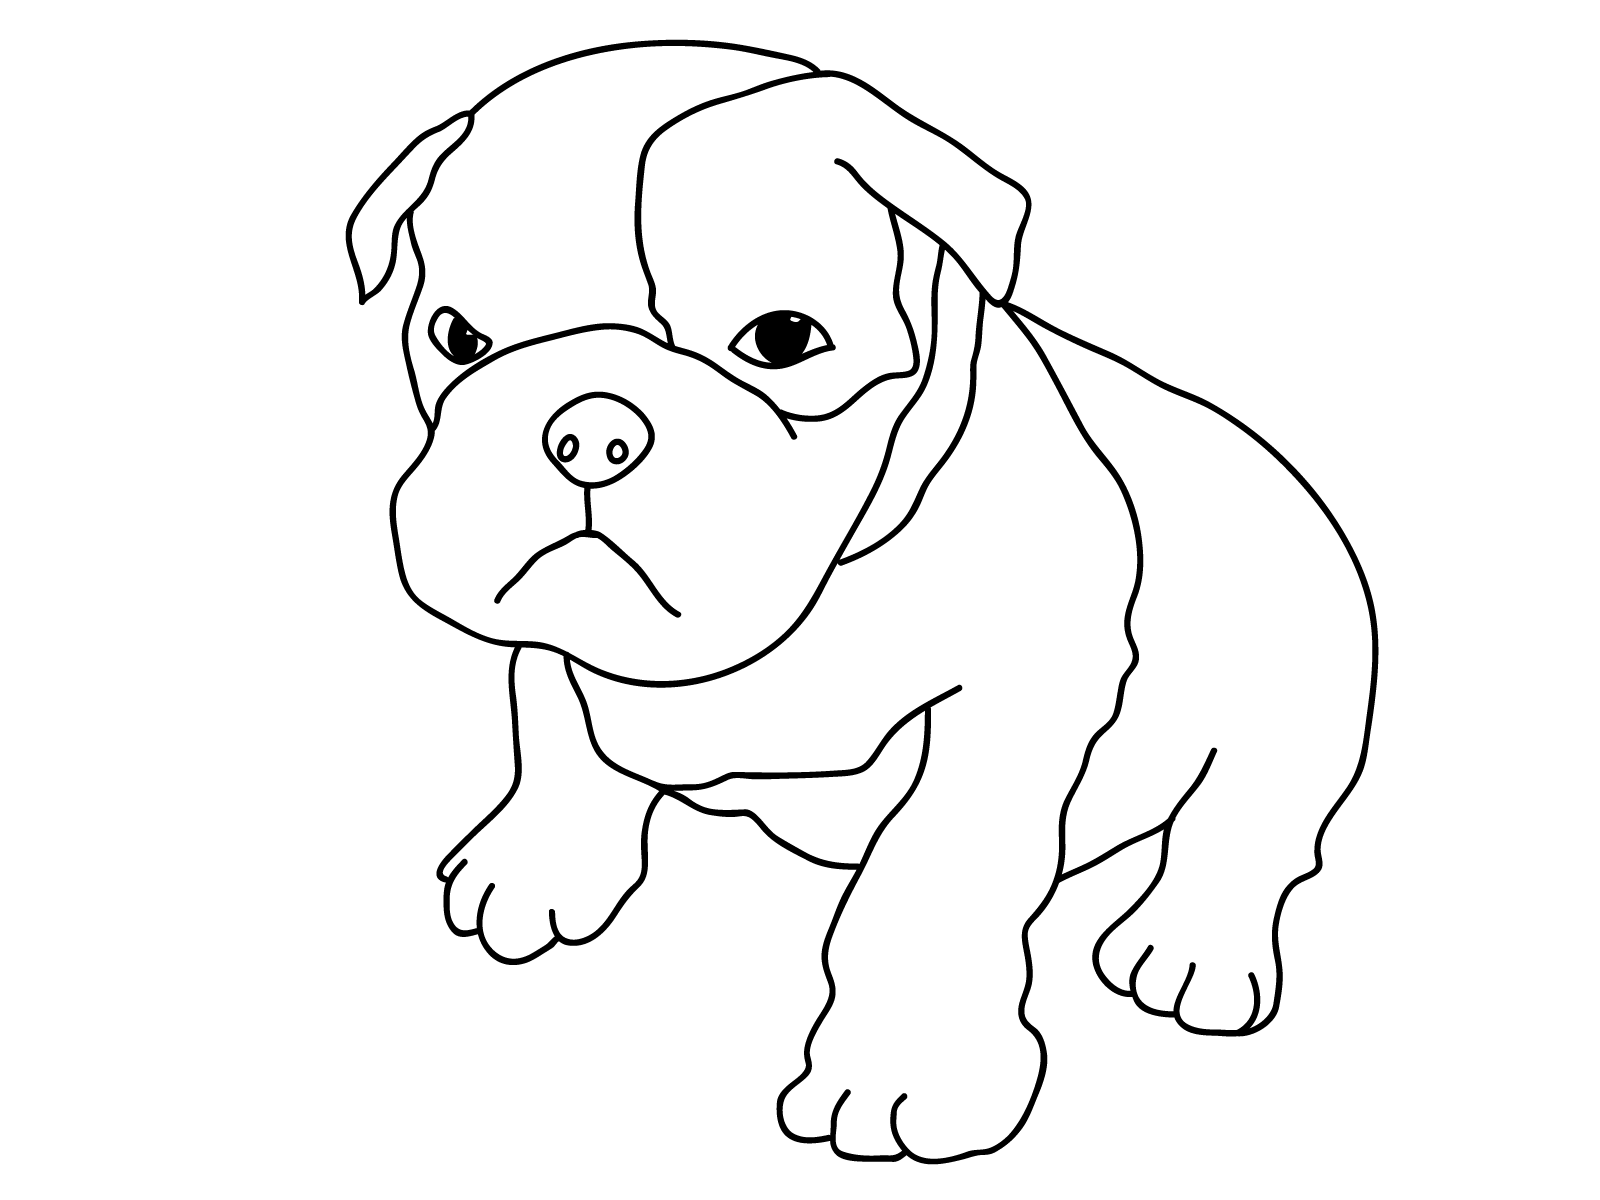 dog coloring pages free printable dogs coloring pages to kids coloring free pages dog